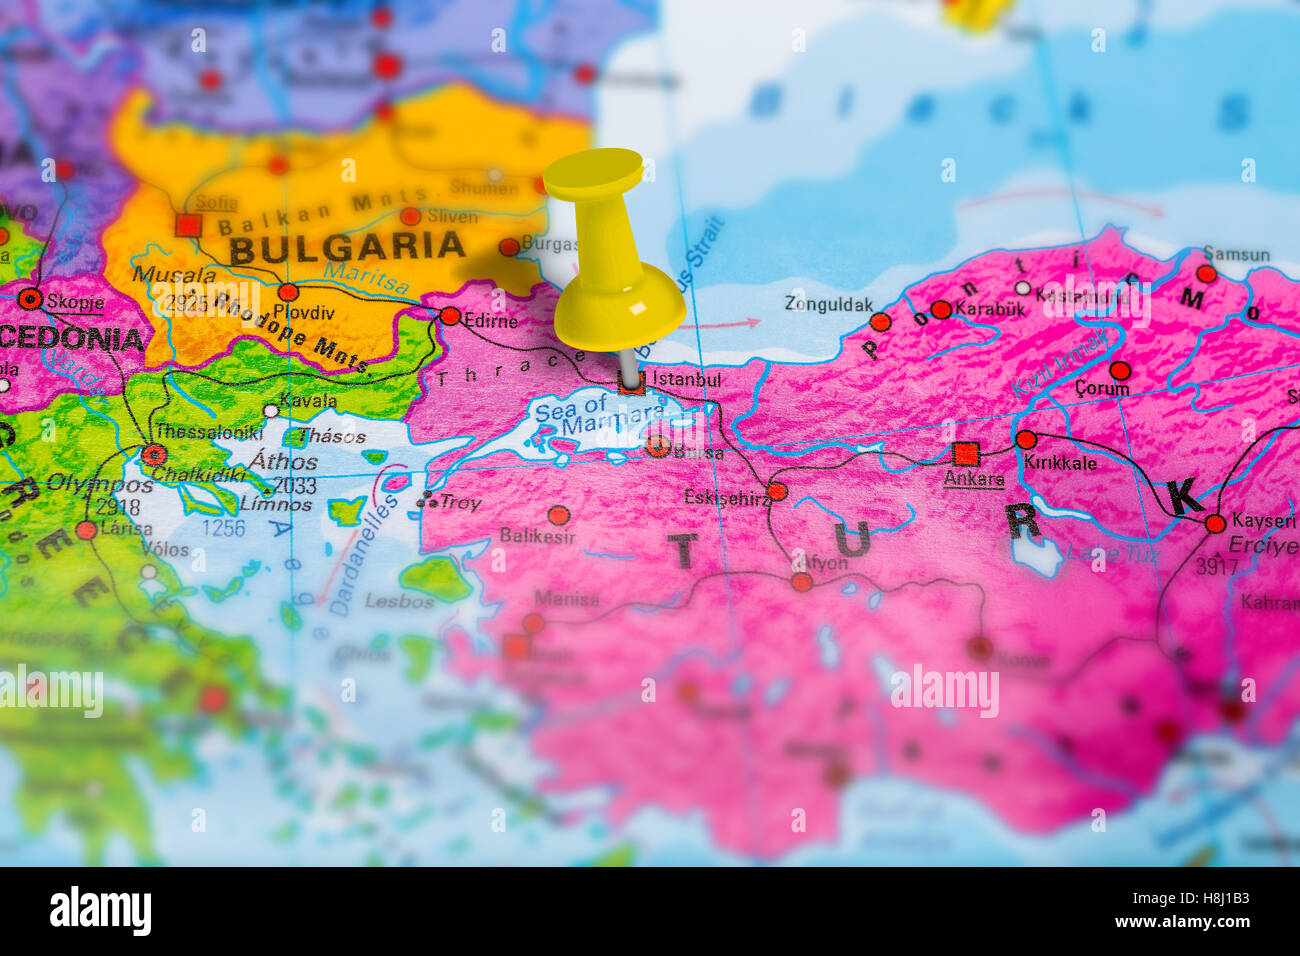 Istanbul Turkey map Stock Photo 125786055 Alamy